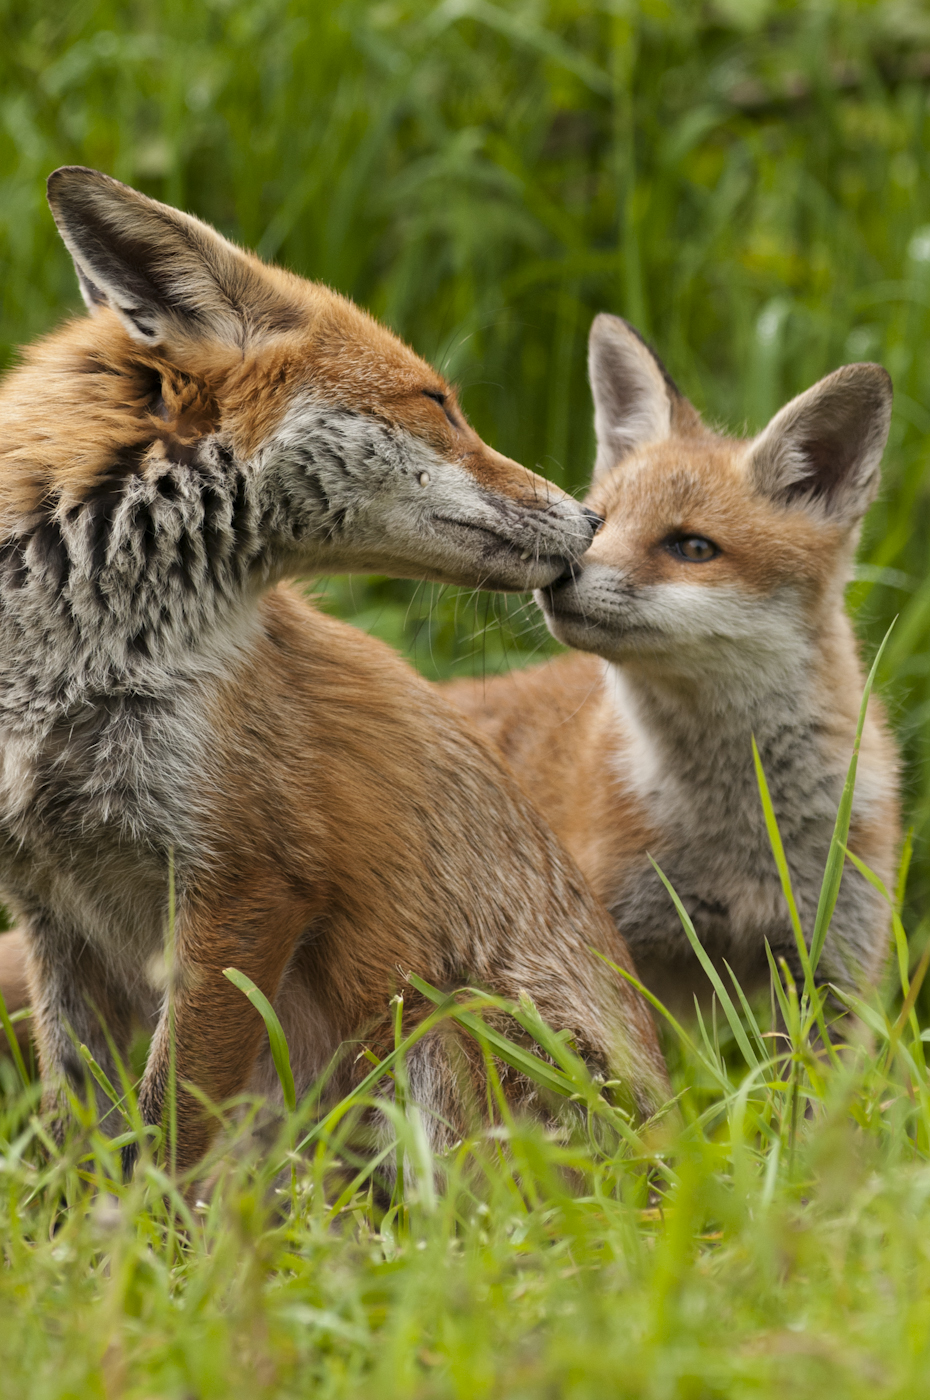 Fox Vixen greeting cub on her return to the den